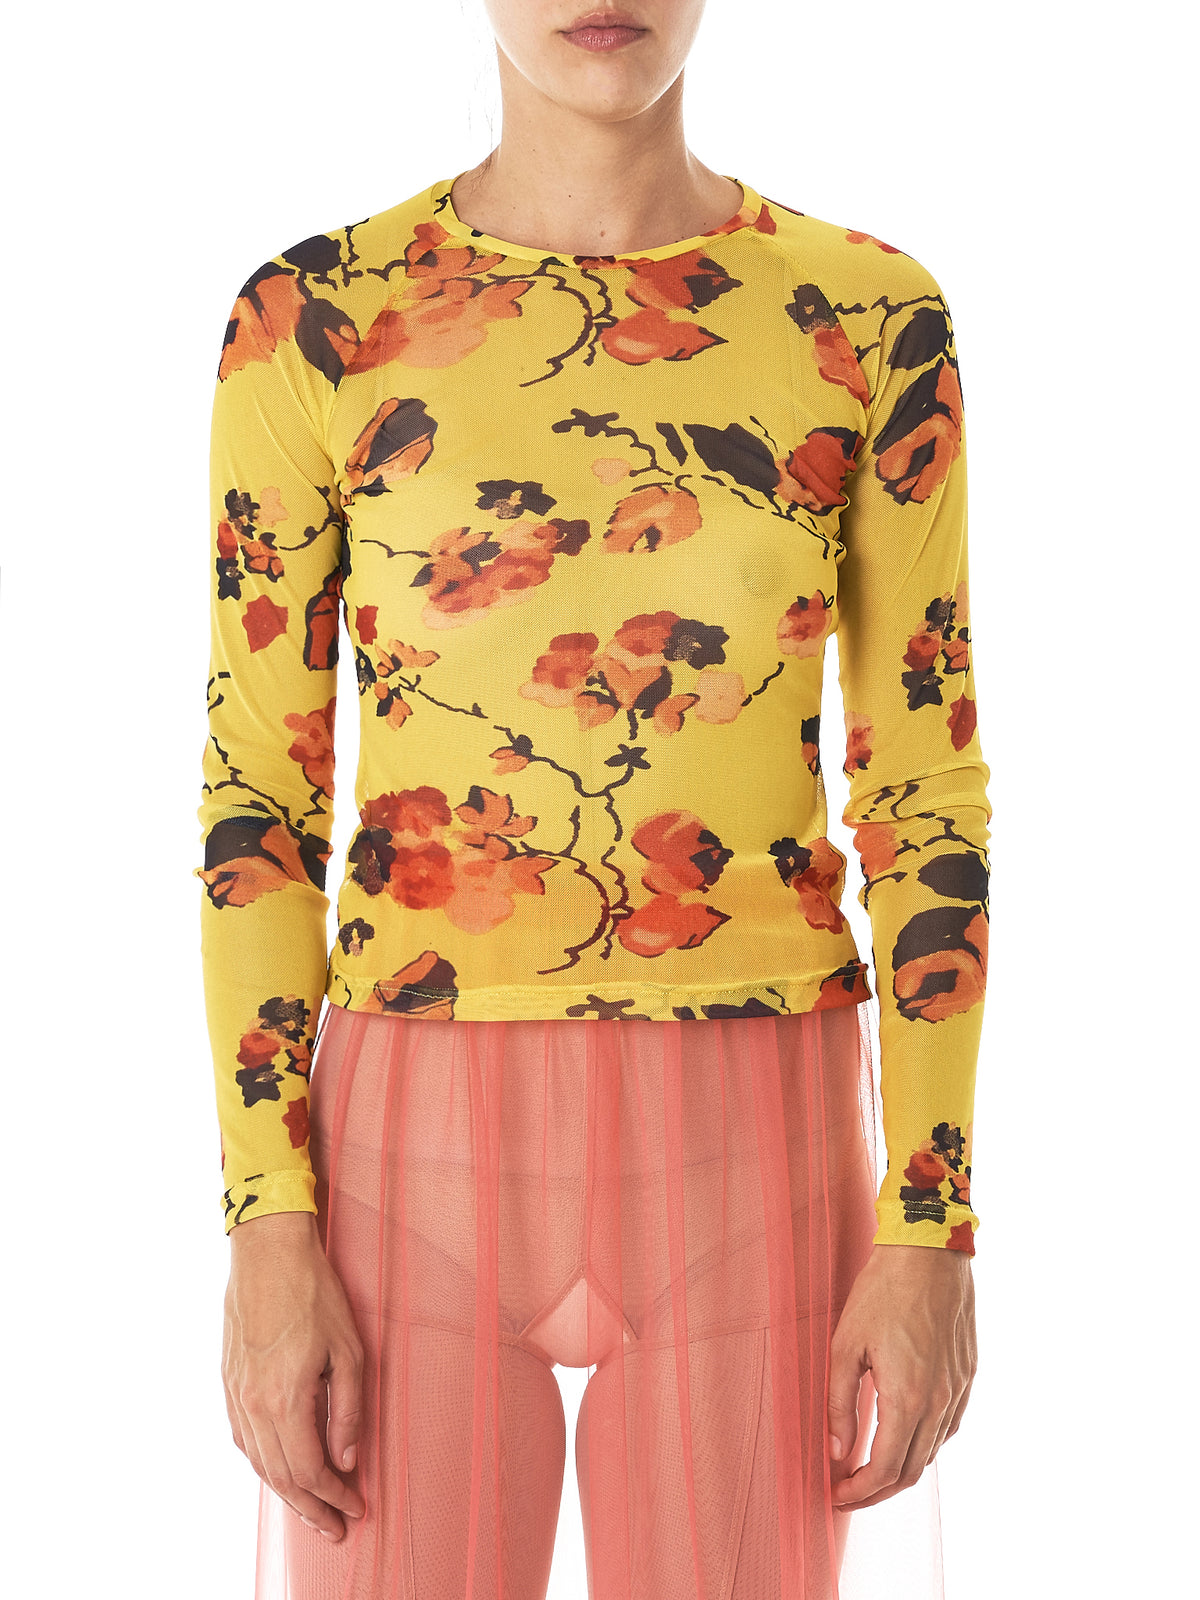 Stretch Floral Tulle Shirt (MGAW17-50-SPIKE-YELLOW)